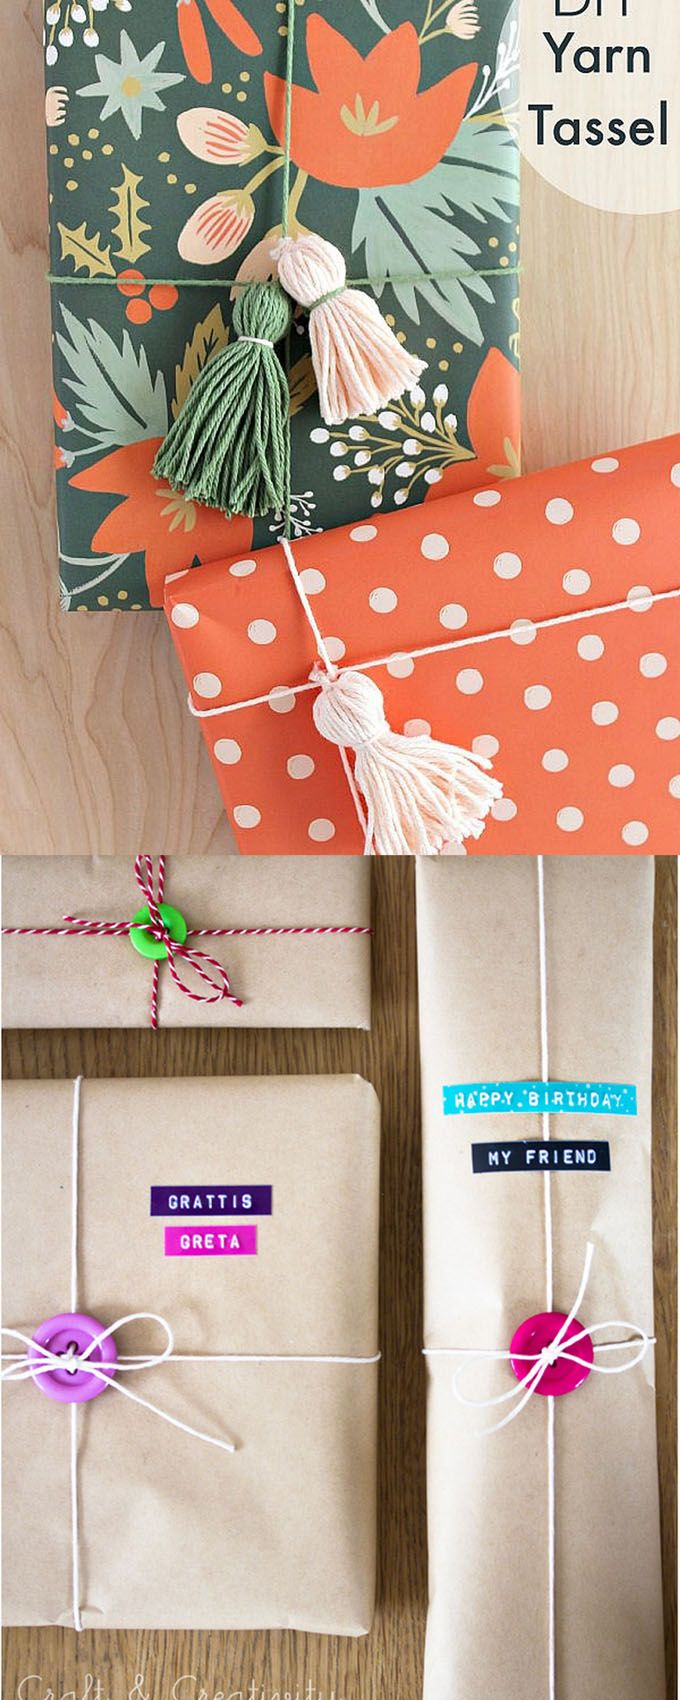 Best 25+ How to gift wrap ideas on Pinterest | Wrapping presents ...